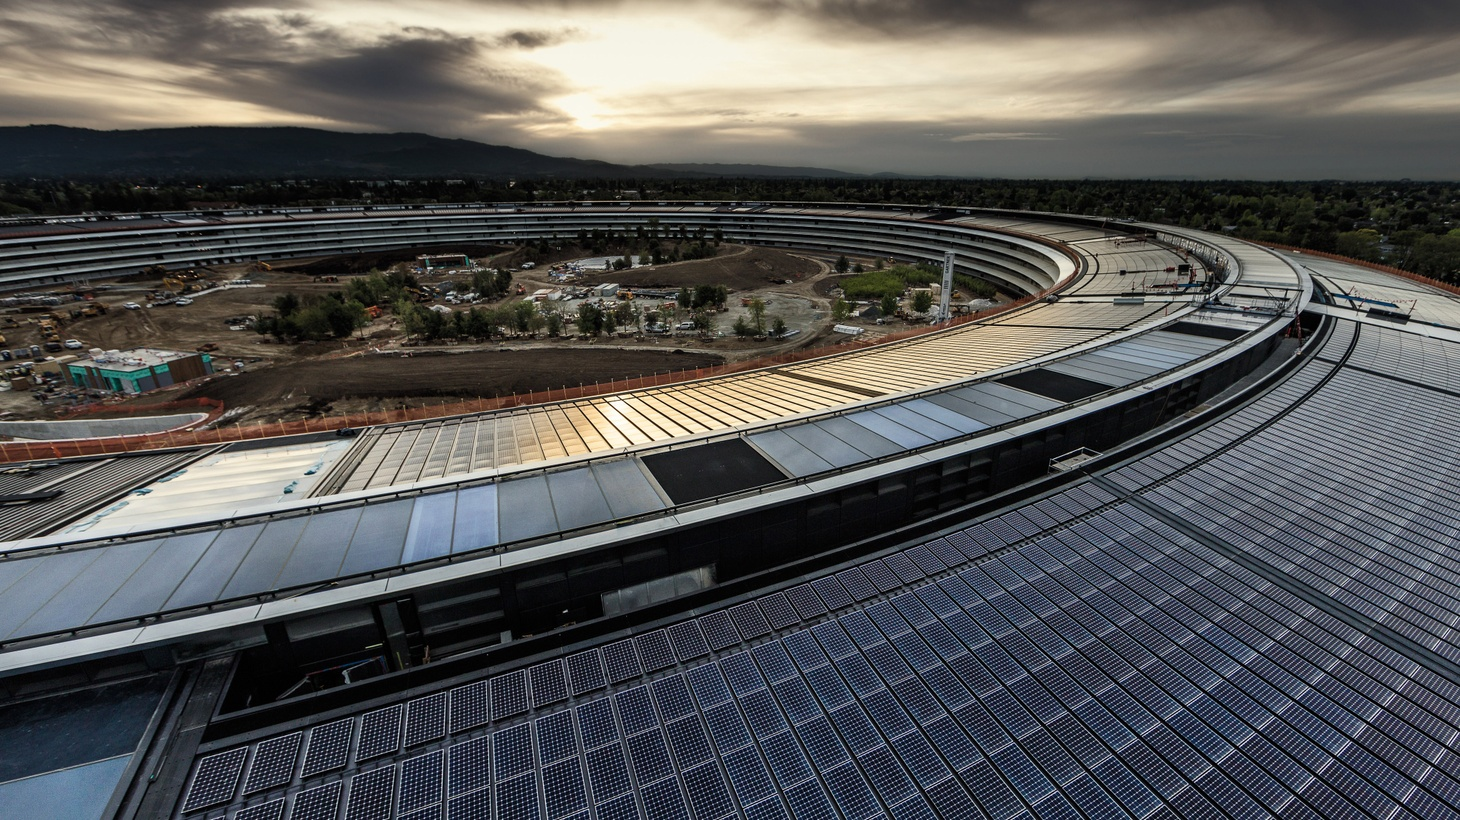 What's one mile around, has a four-story glass door, and looks like a spaceship? DnA gets a tour of Apple's new headquarters in Cupertino. And we learn about Los Angeles' creative economy, and why LA is a hotbed for manufacturing.